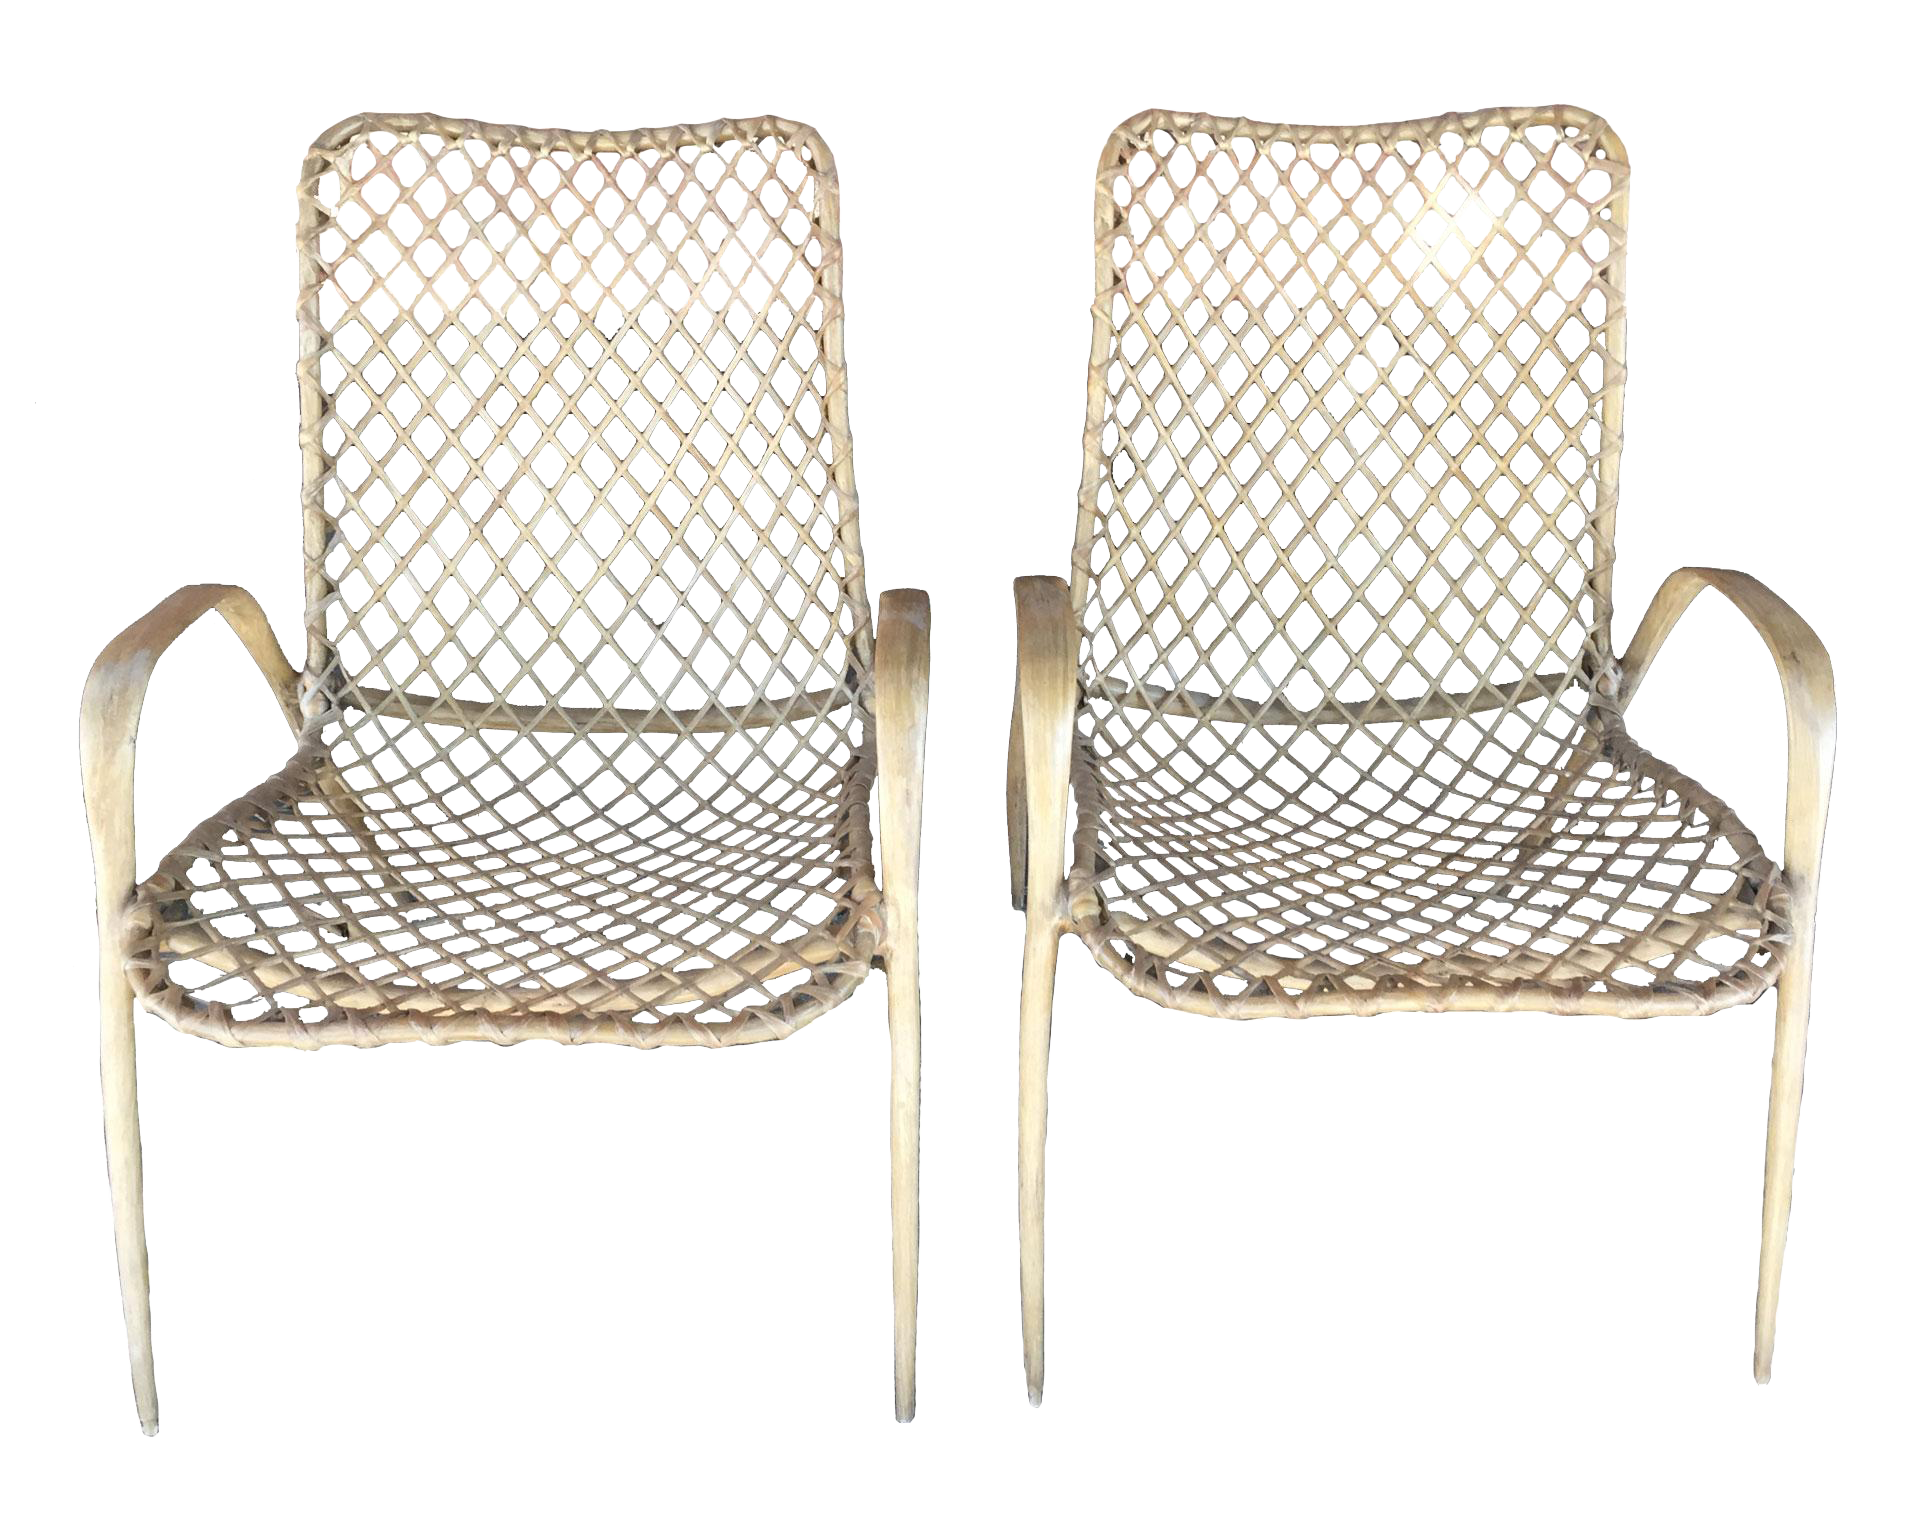 Pair of Translucent Fiberglass Chairs circa 1950s For Sale  sc 1 st  Decaso & High-End Pair of Translucent Fiberglass Chairs circa 1950s | DECASO